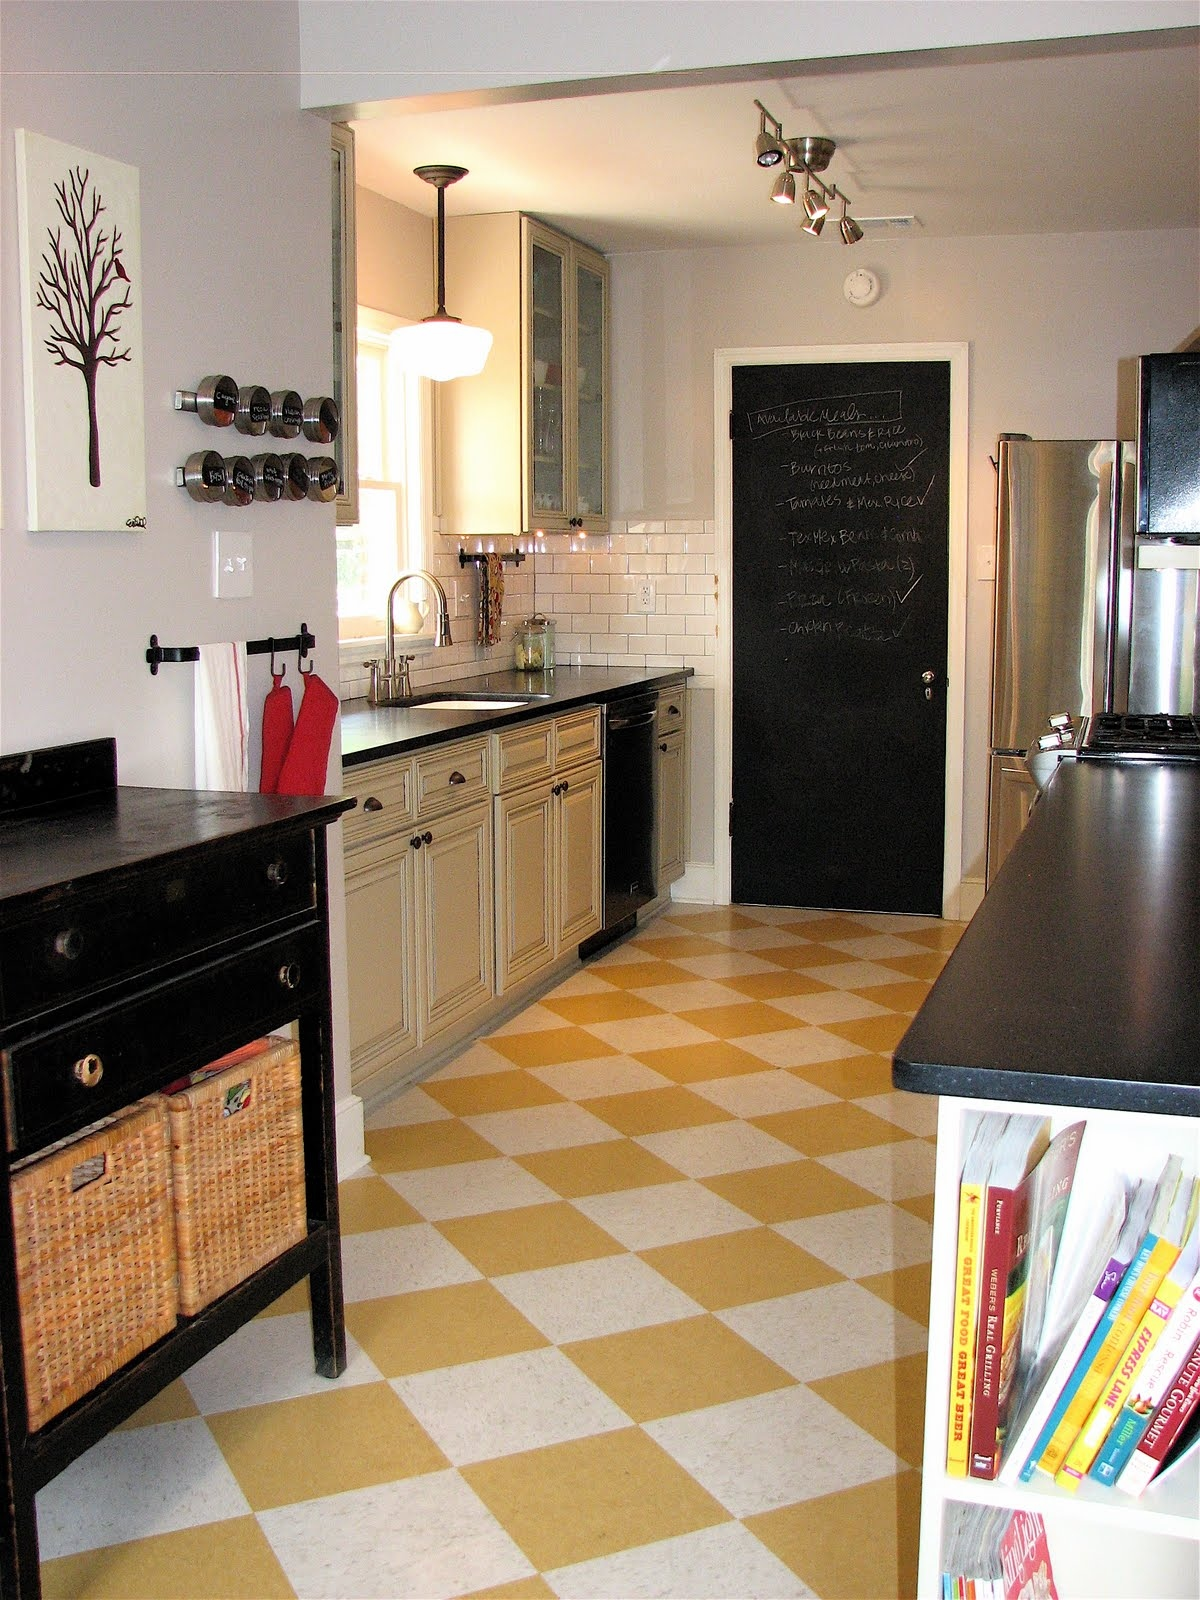 18 beautiful examples of kitchen floor tile 5 yellow chess dailygadgetfo Image collections